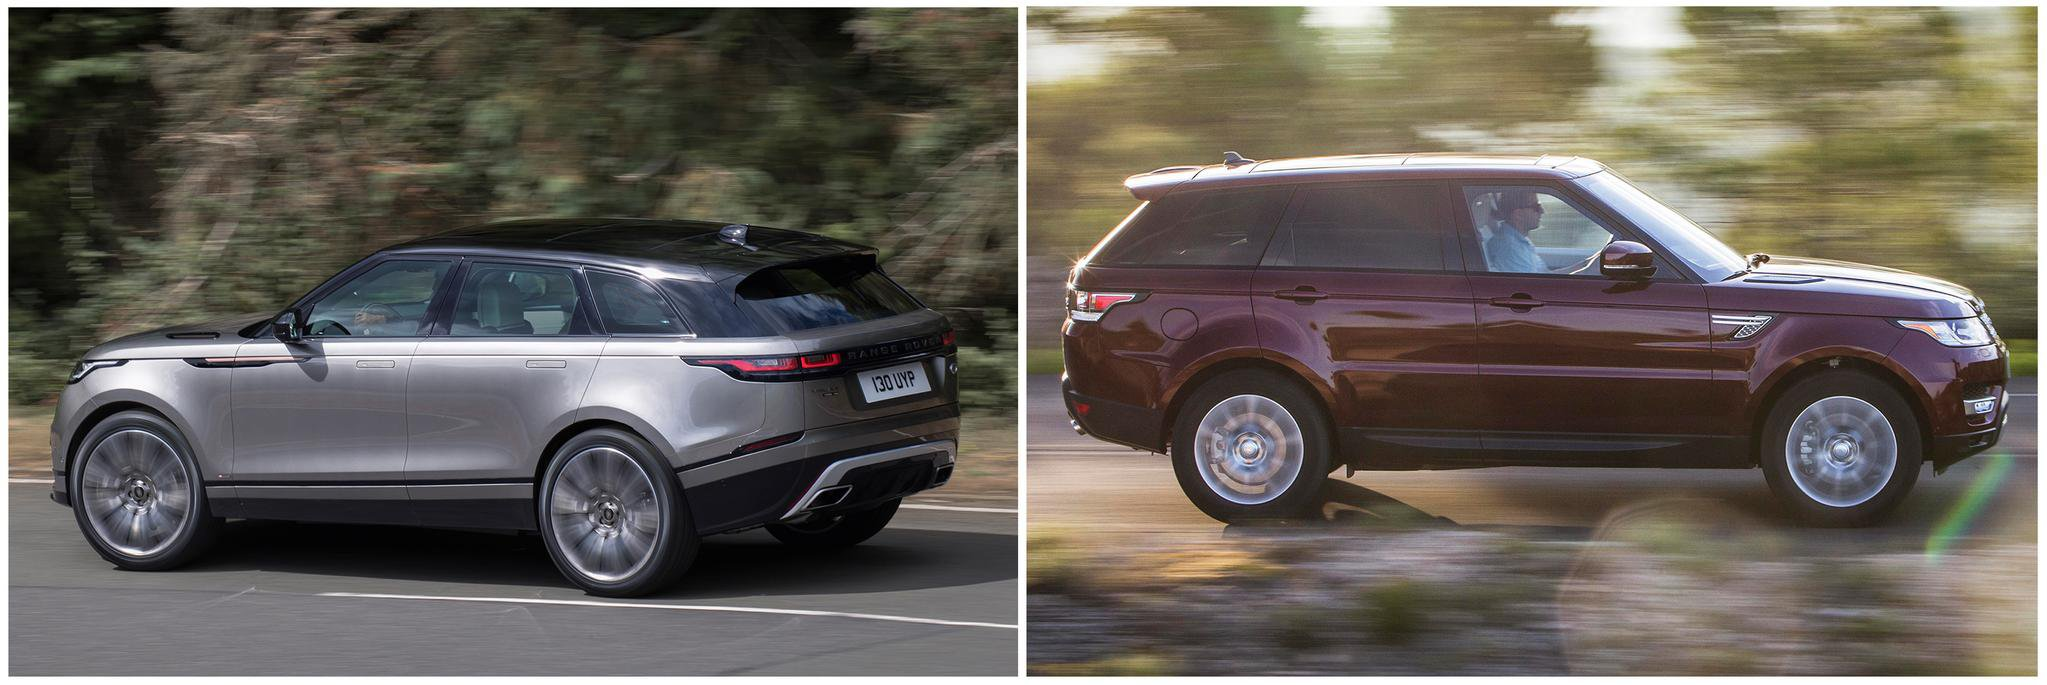 New Range Rover Velar Vs Sport